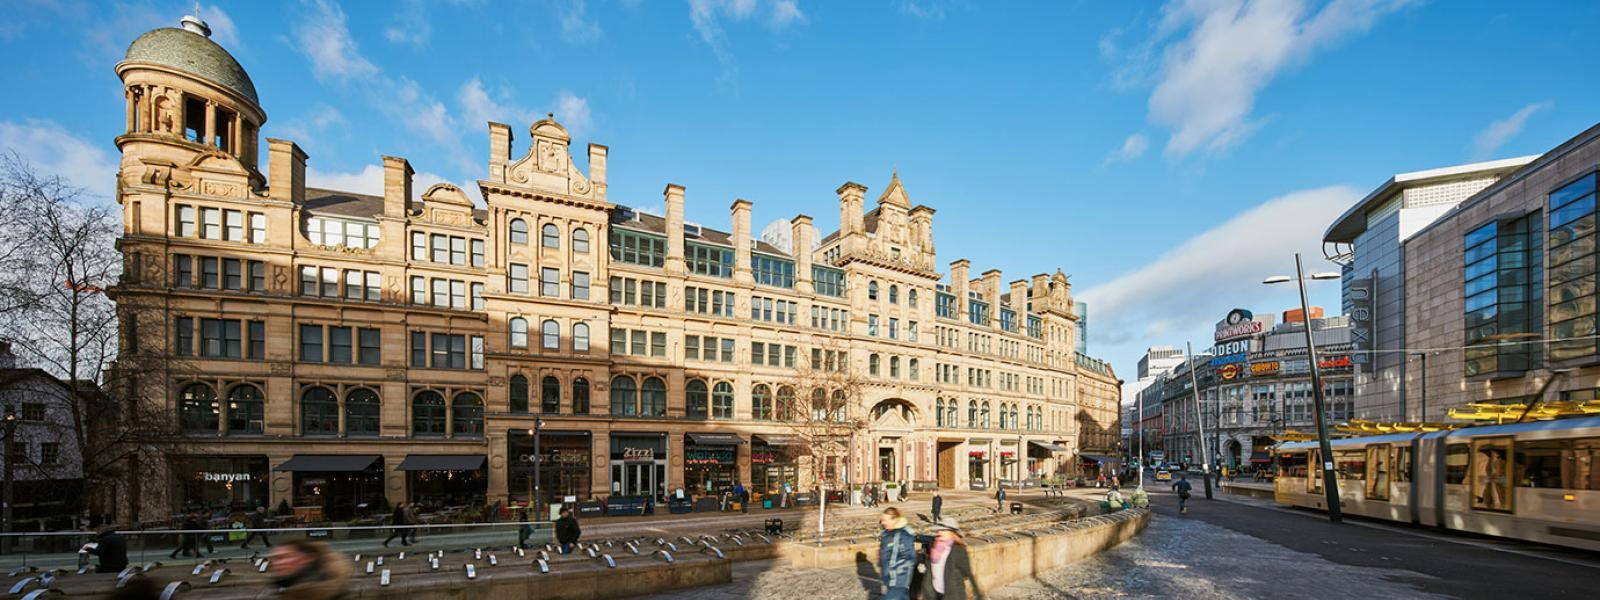 Roomzzzz aparthotels are ideal for a stag or hen party - exterior of Corn Exchange on busy street